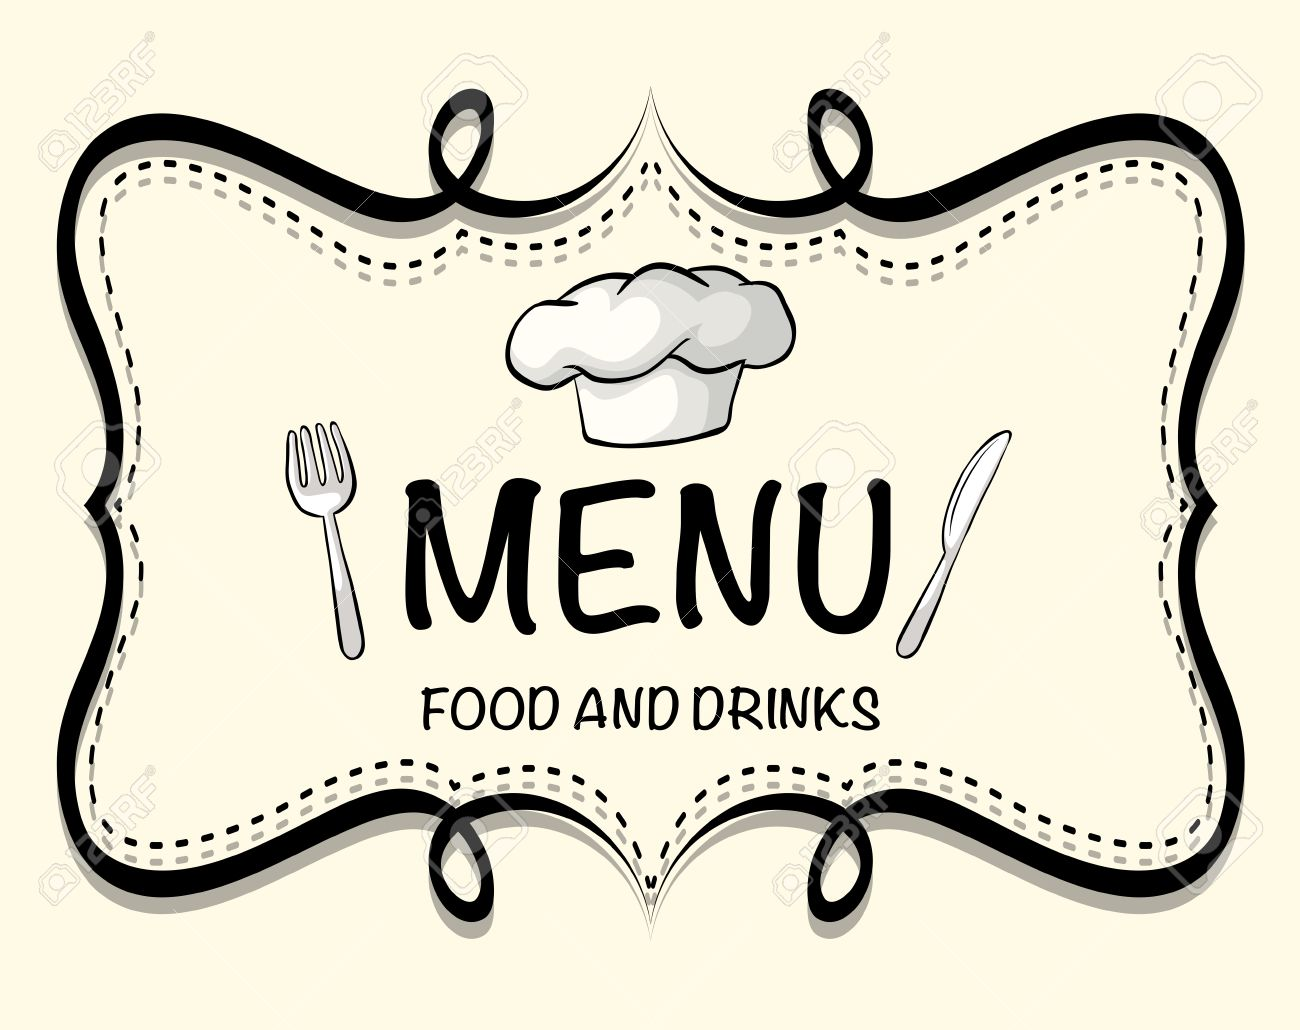 logo design of restaurant menu illustration royalty free cliparts